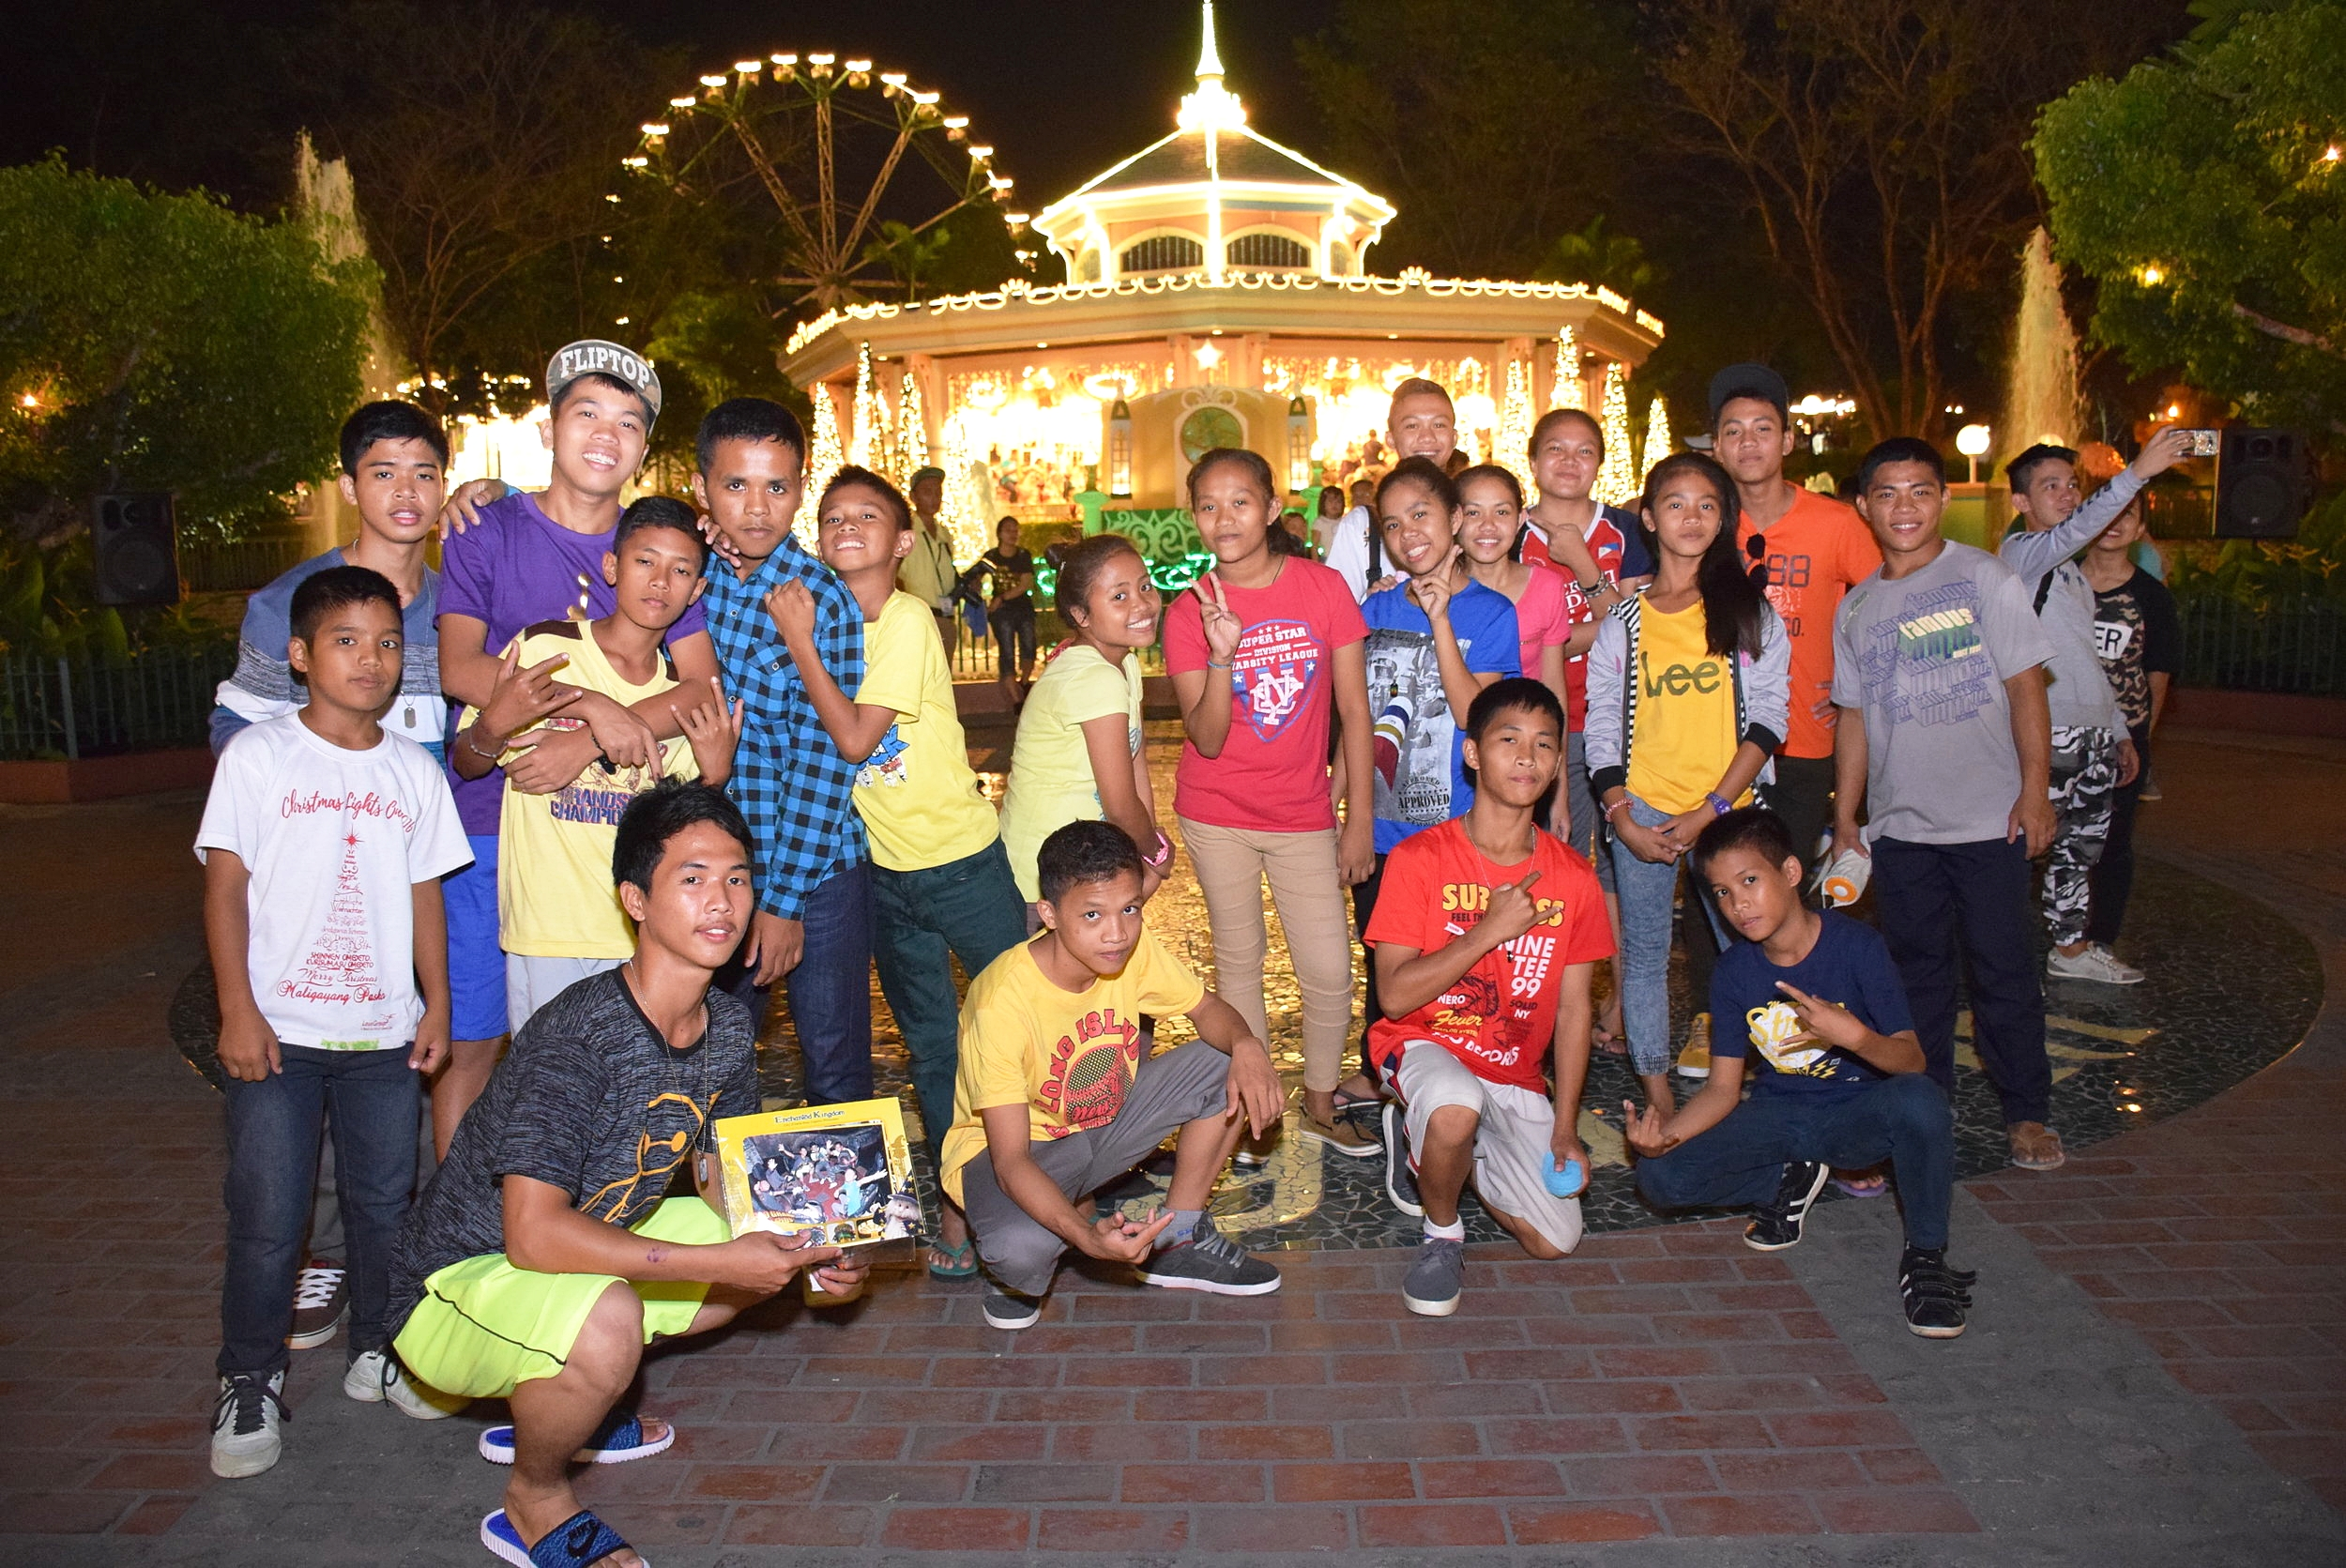 Christmas day at Enchanted Kingdom. This activity has been going on for years due to the untiring support of good heartened people who share the Joy of Christmas.